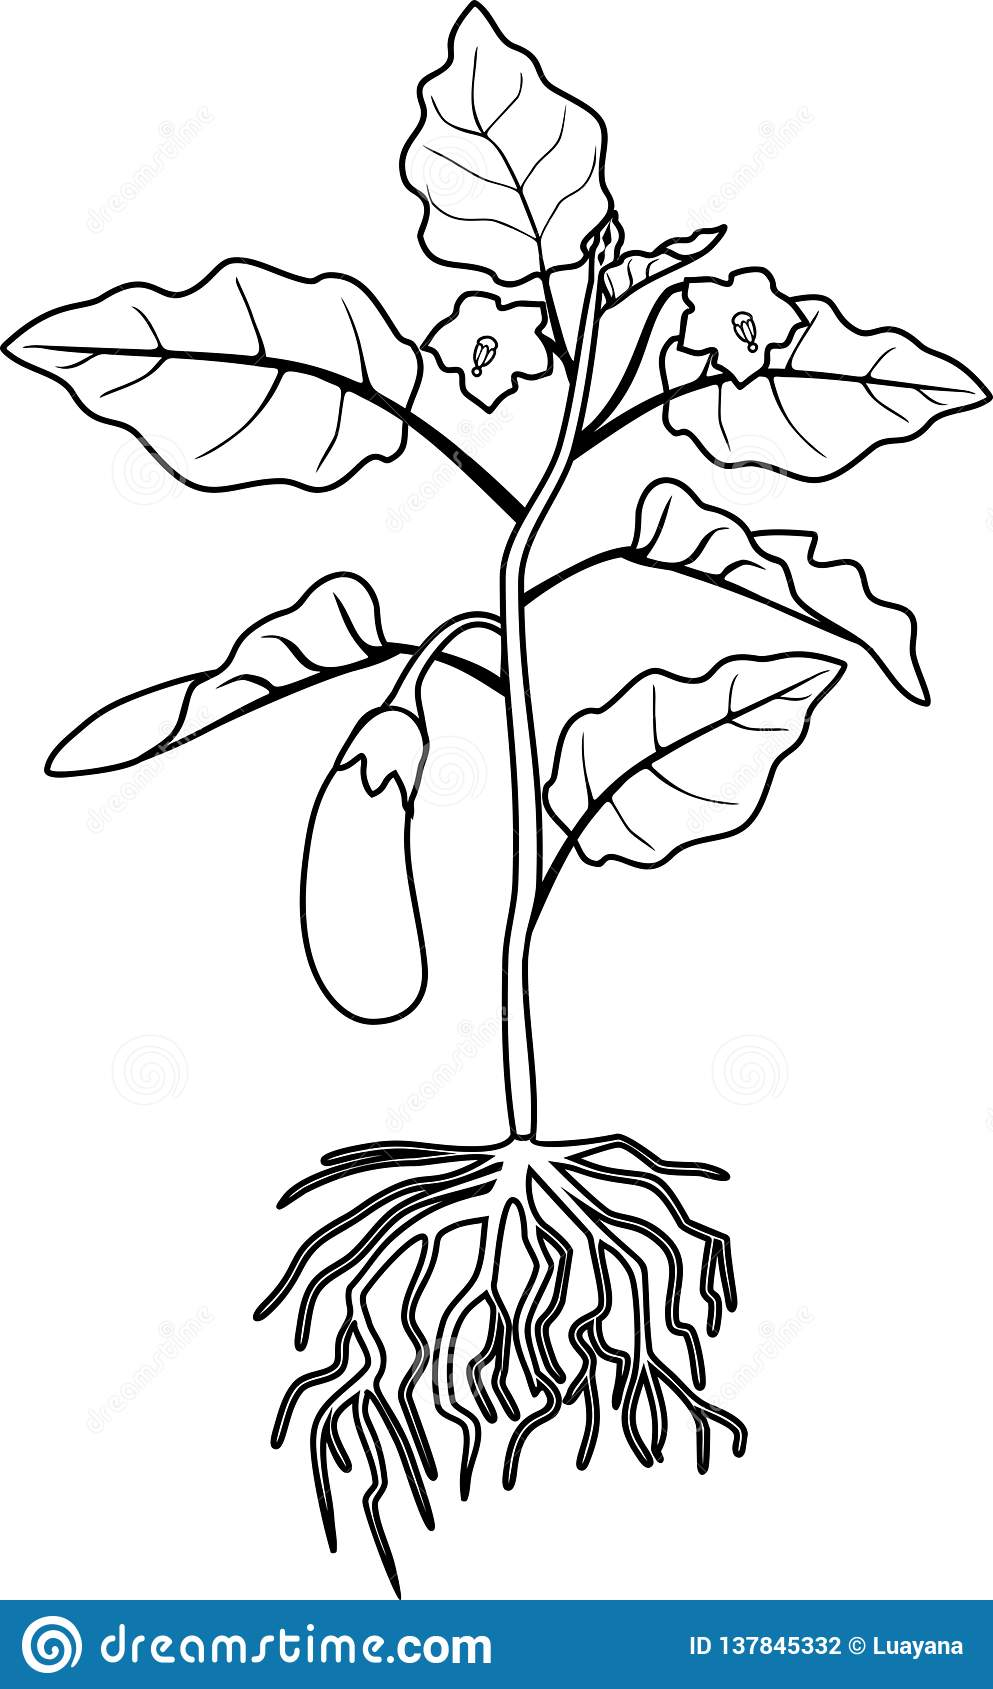 coloring page eggplant with leaves fruit and root system stock vector illustration of brinjal vegetable 137845332 https www dreamstime com coloring page eggplant leaves fruit root system coloring page eggplant leaves fruit root system isolated image137845332